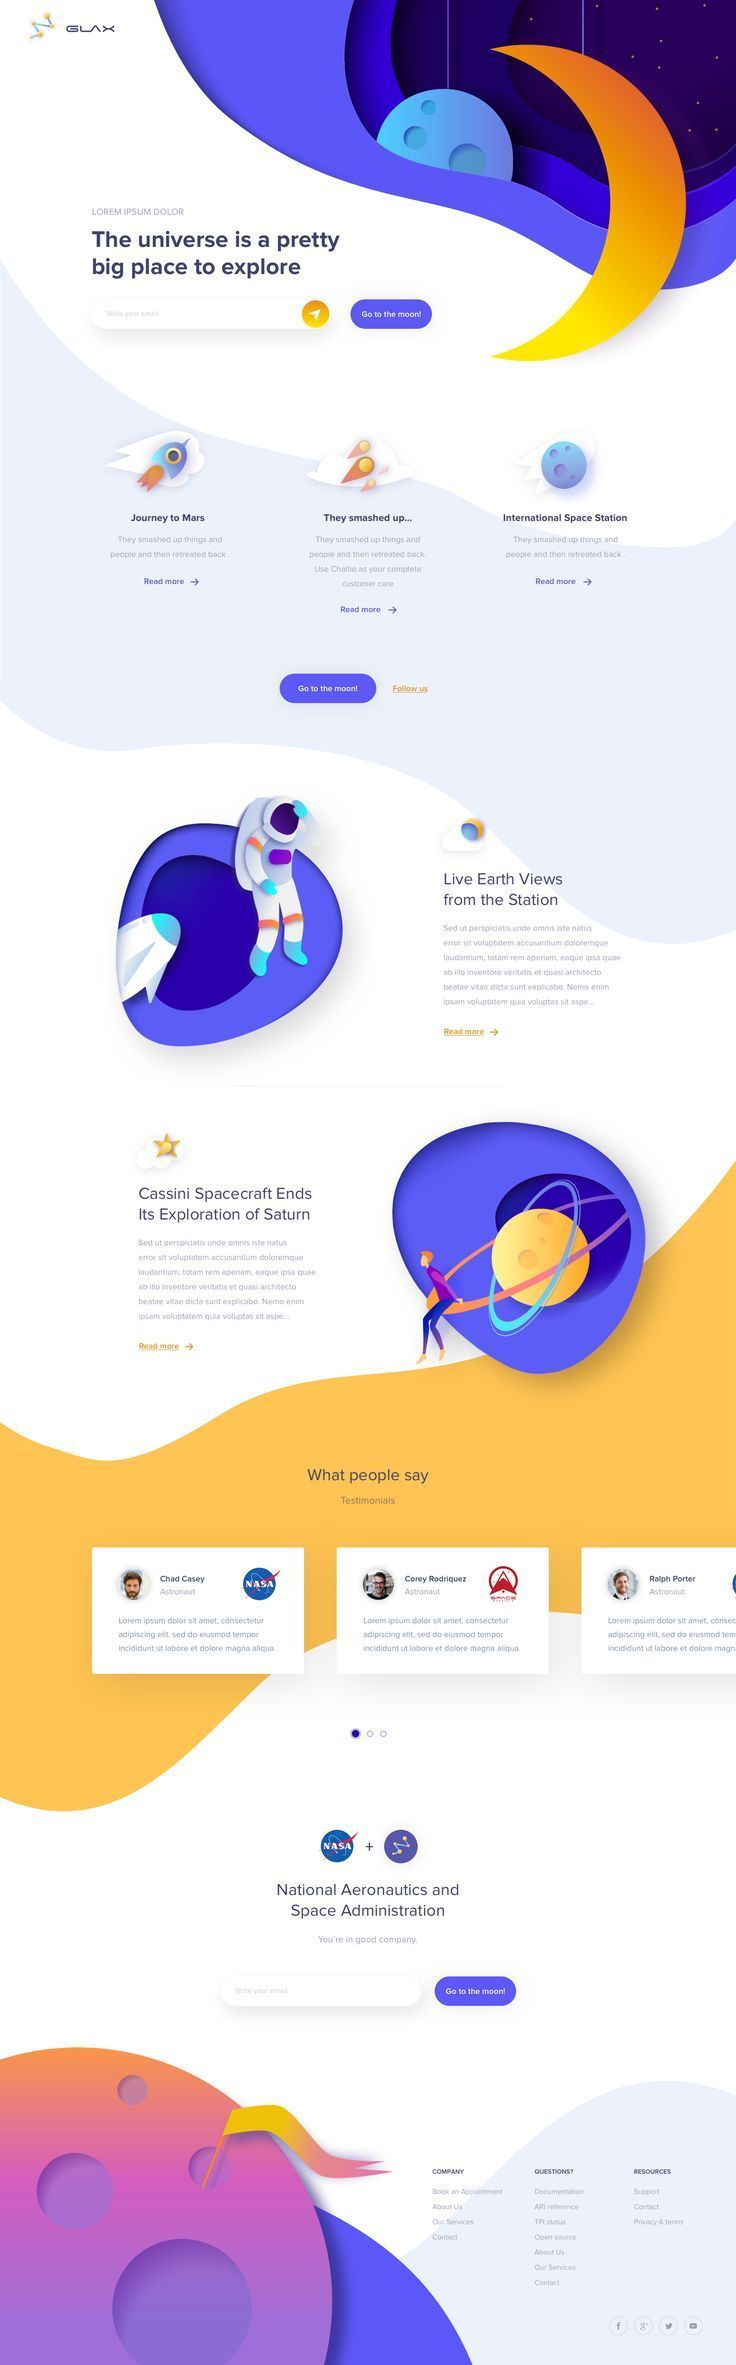 Glax - Landin Page exploration for kids. Ui concept and design by Outcrowd.. If you're a user experience professional, listen to The UX Blog Podcast on iTunes. #MobileWebDesign